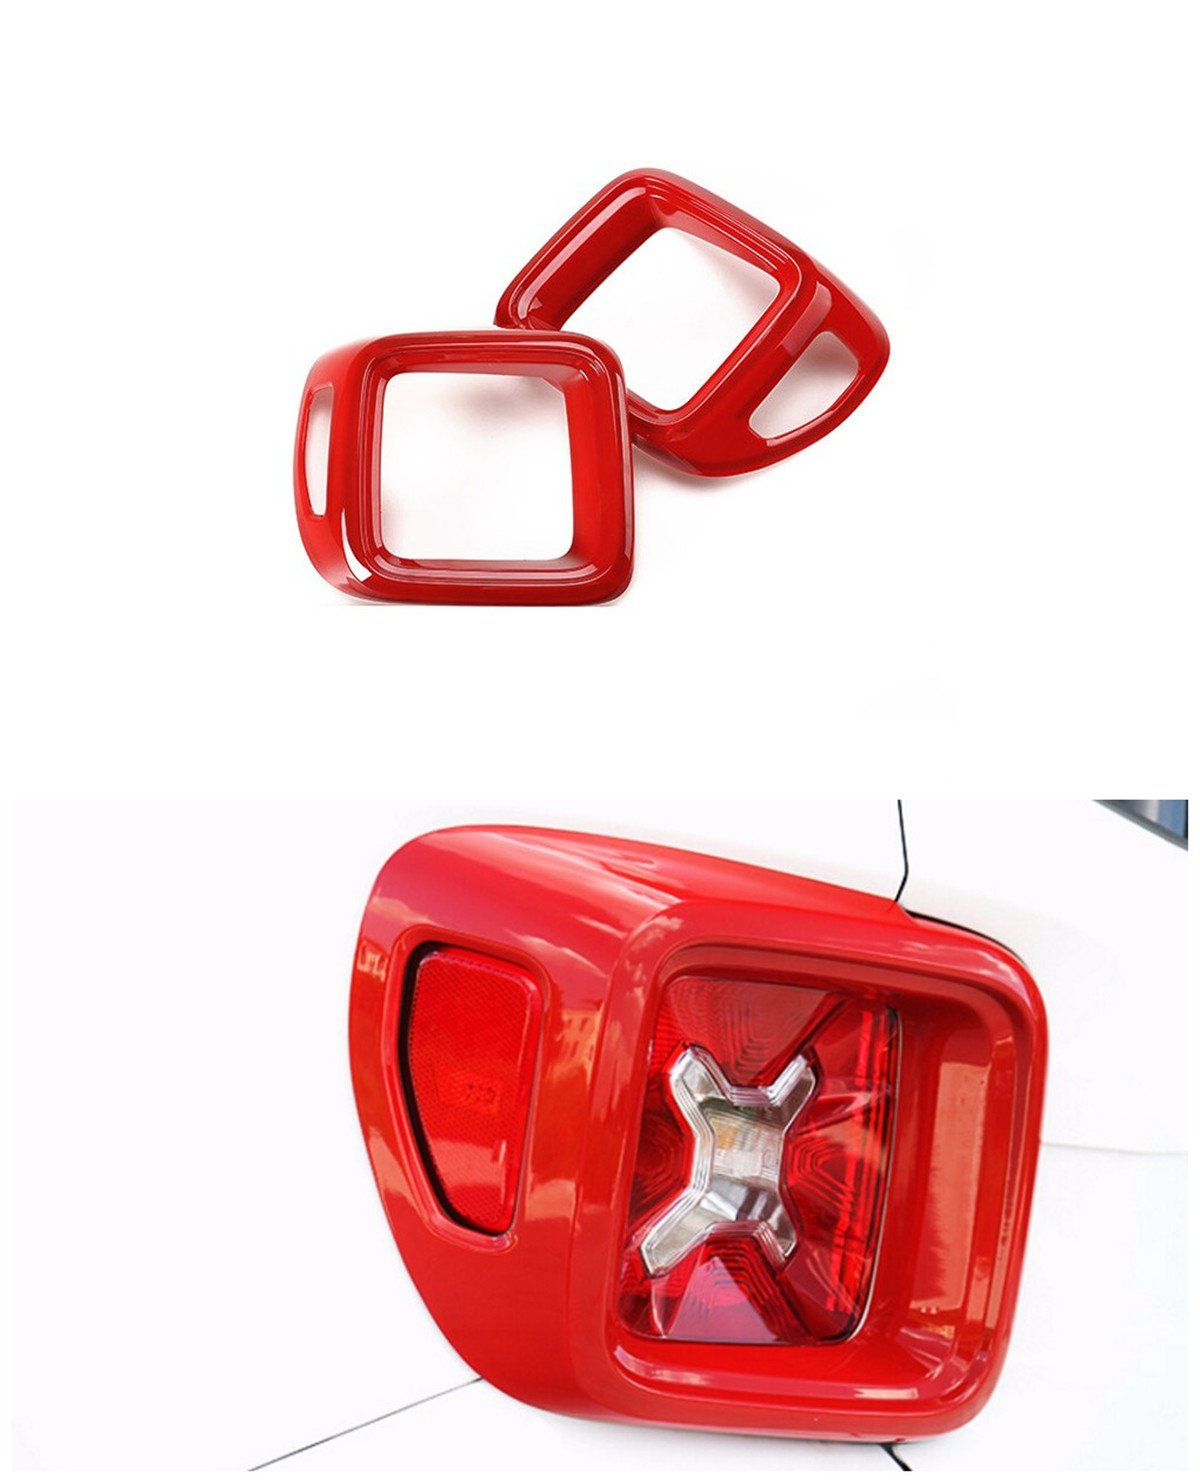 Dwindish Red ABS Car Tail Light Guard Rear Lamp Cover Trim for Jeep Renegade 2015 up